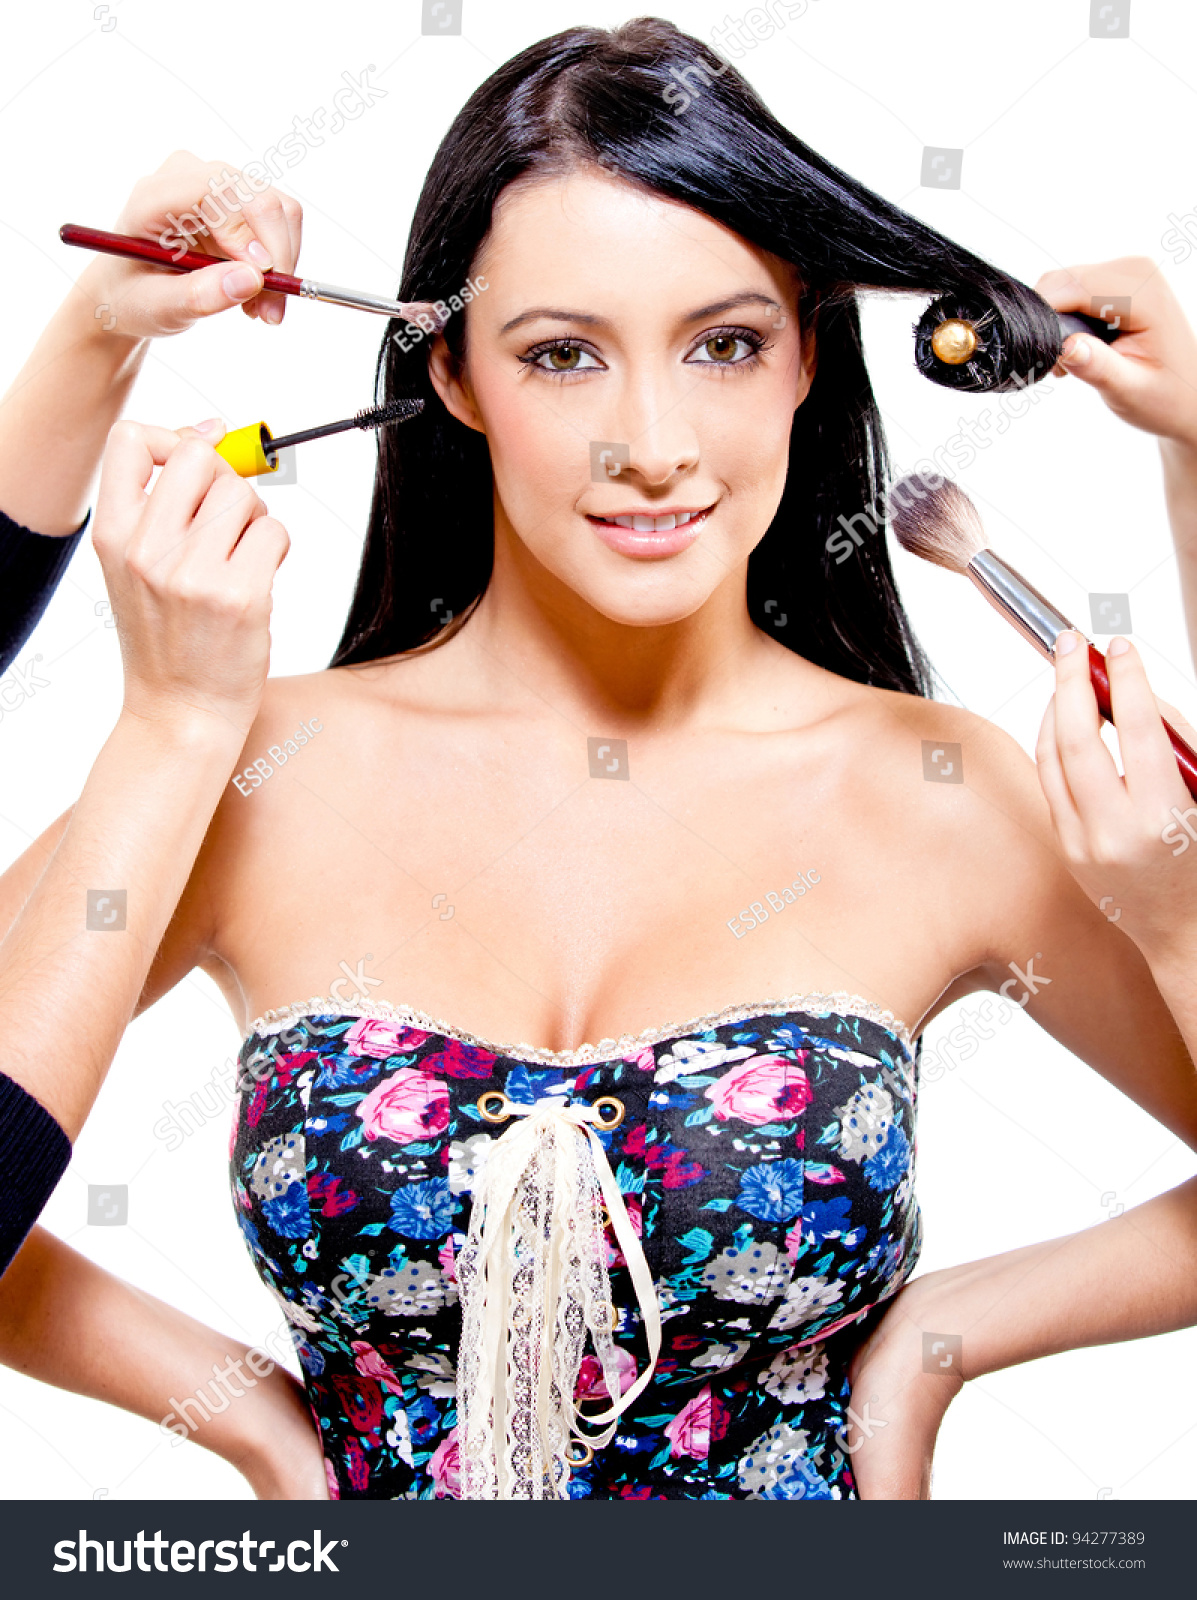 hair professional woman getting beauty makeup concepts styling shutterstock